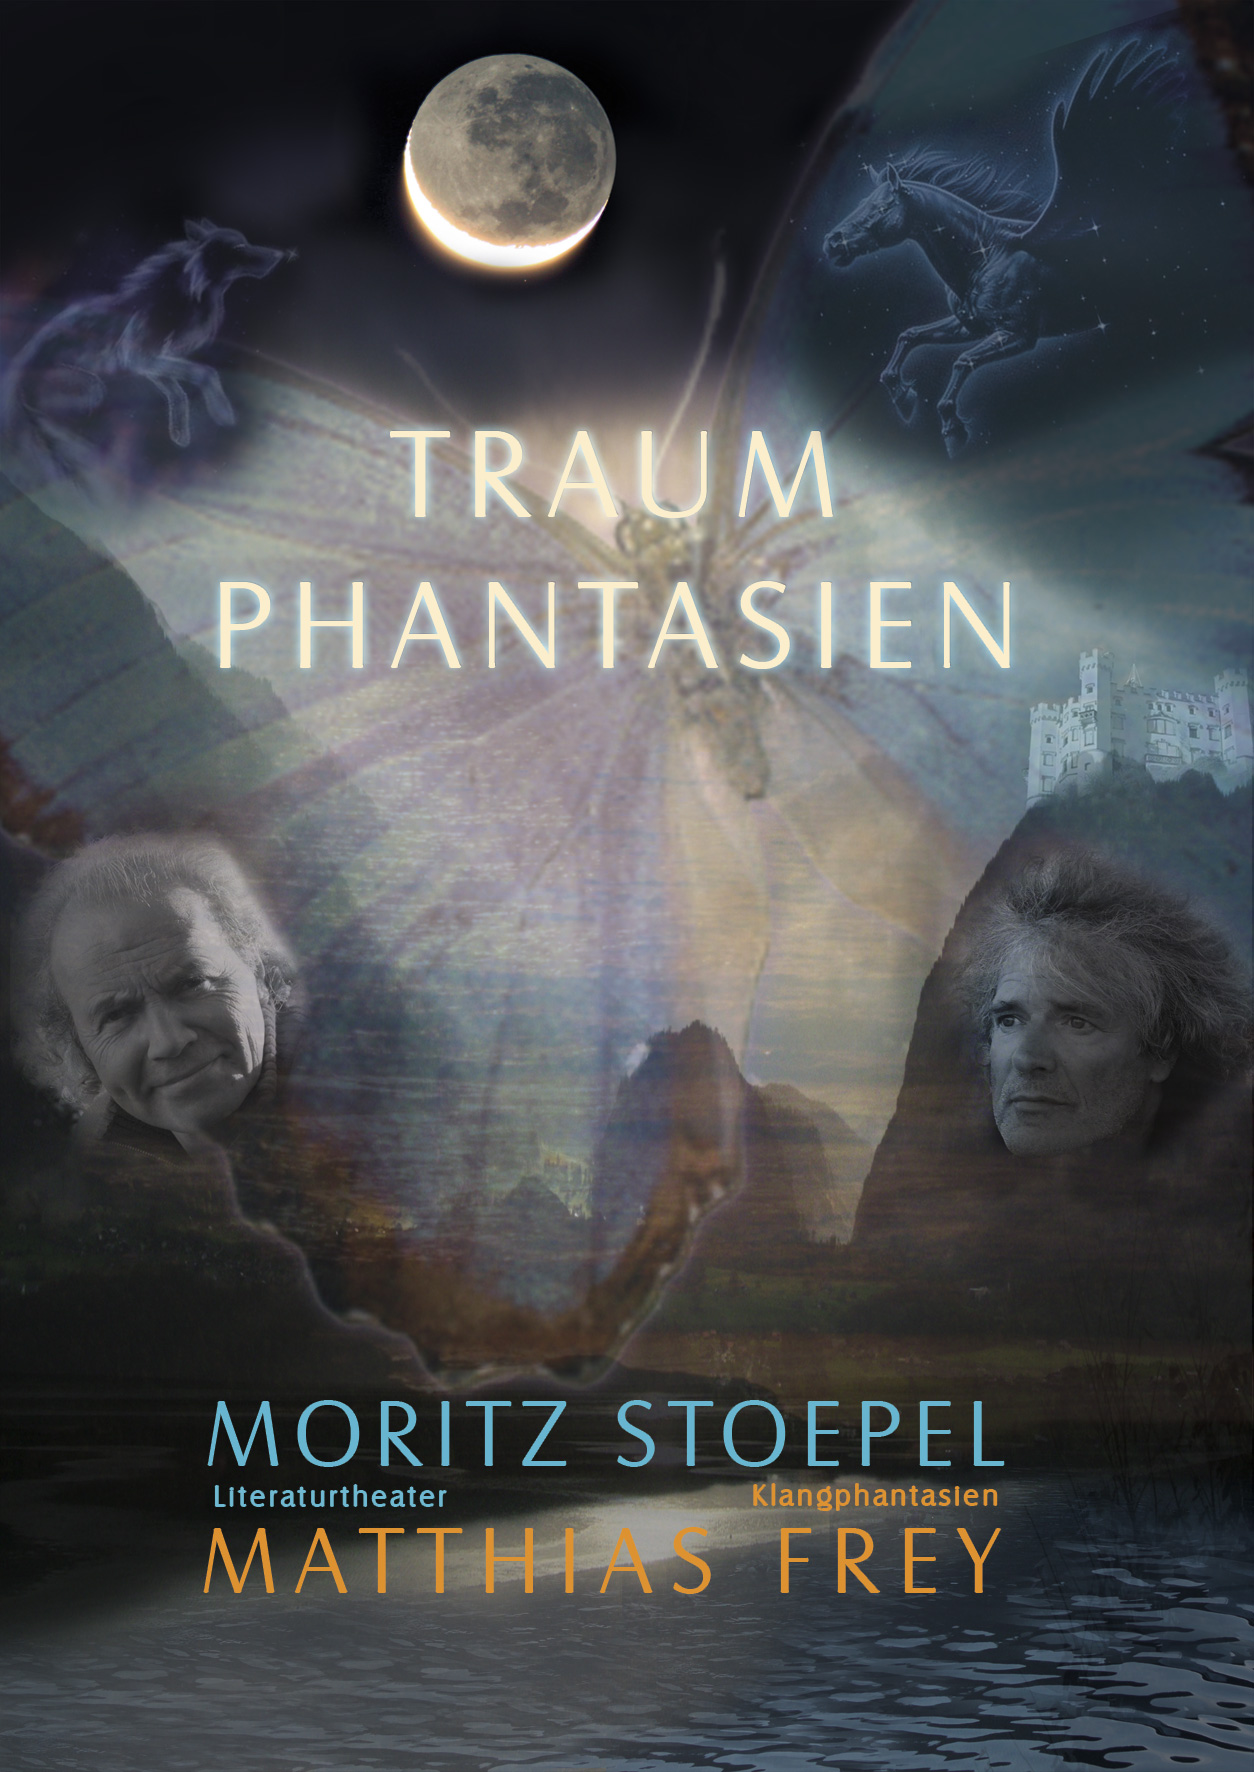 Traumphantasien